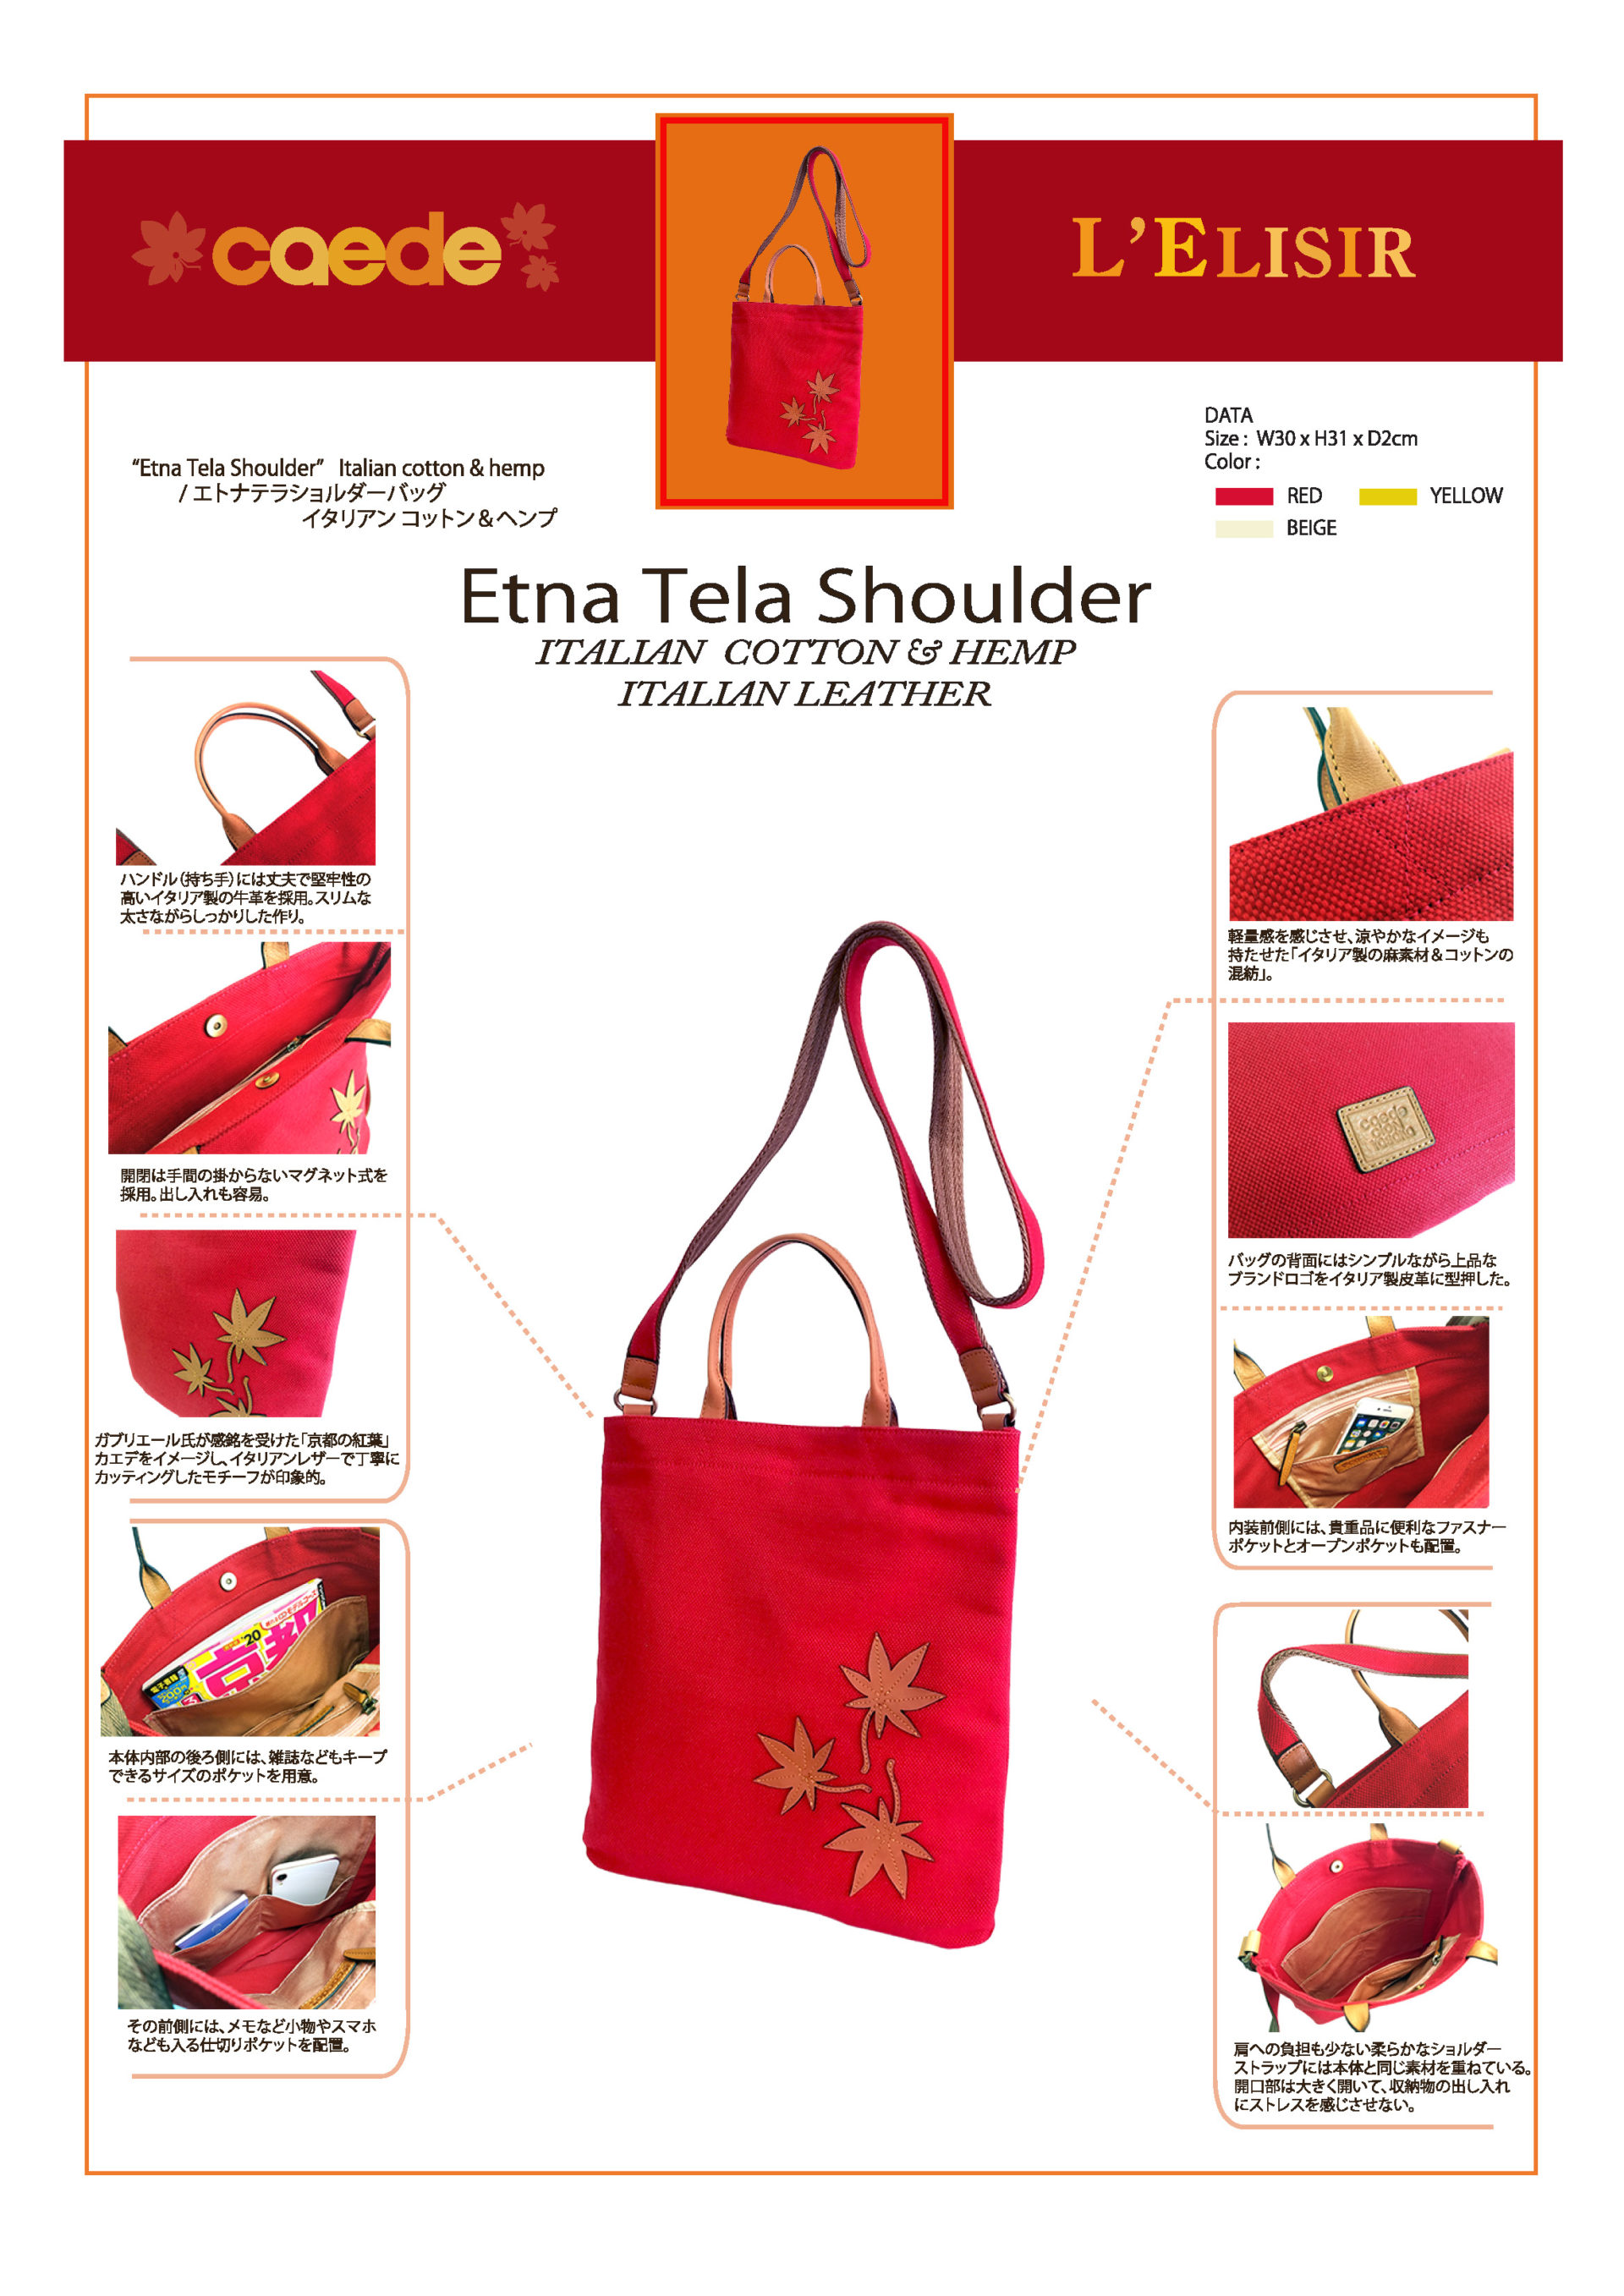 etna tela shoulder | caede京都